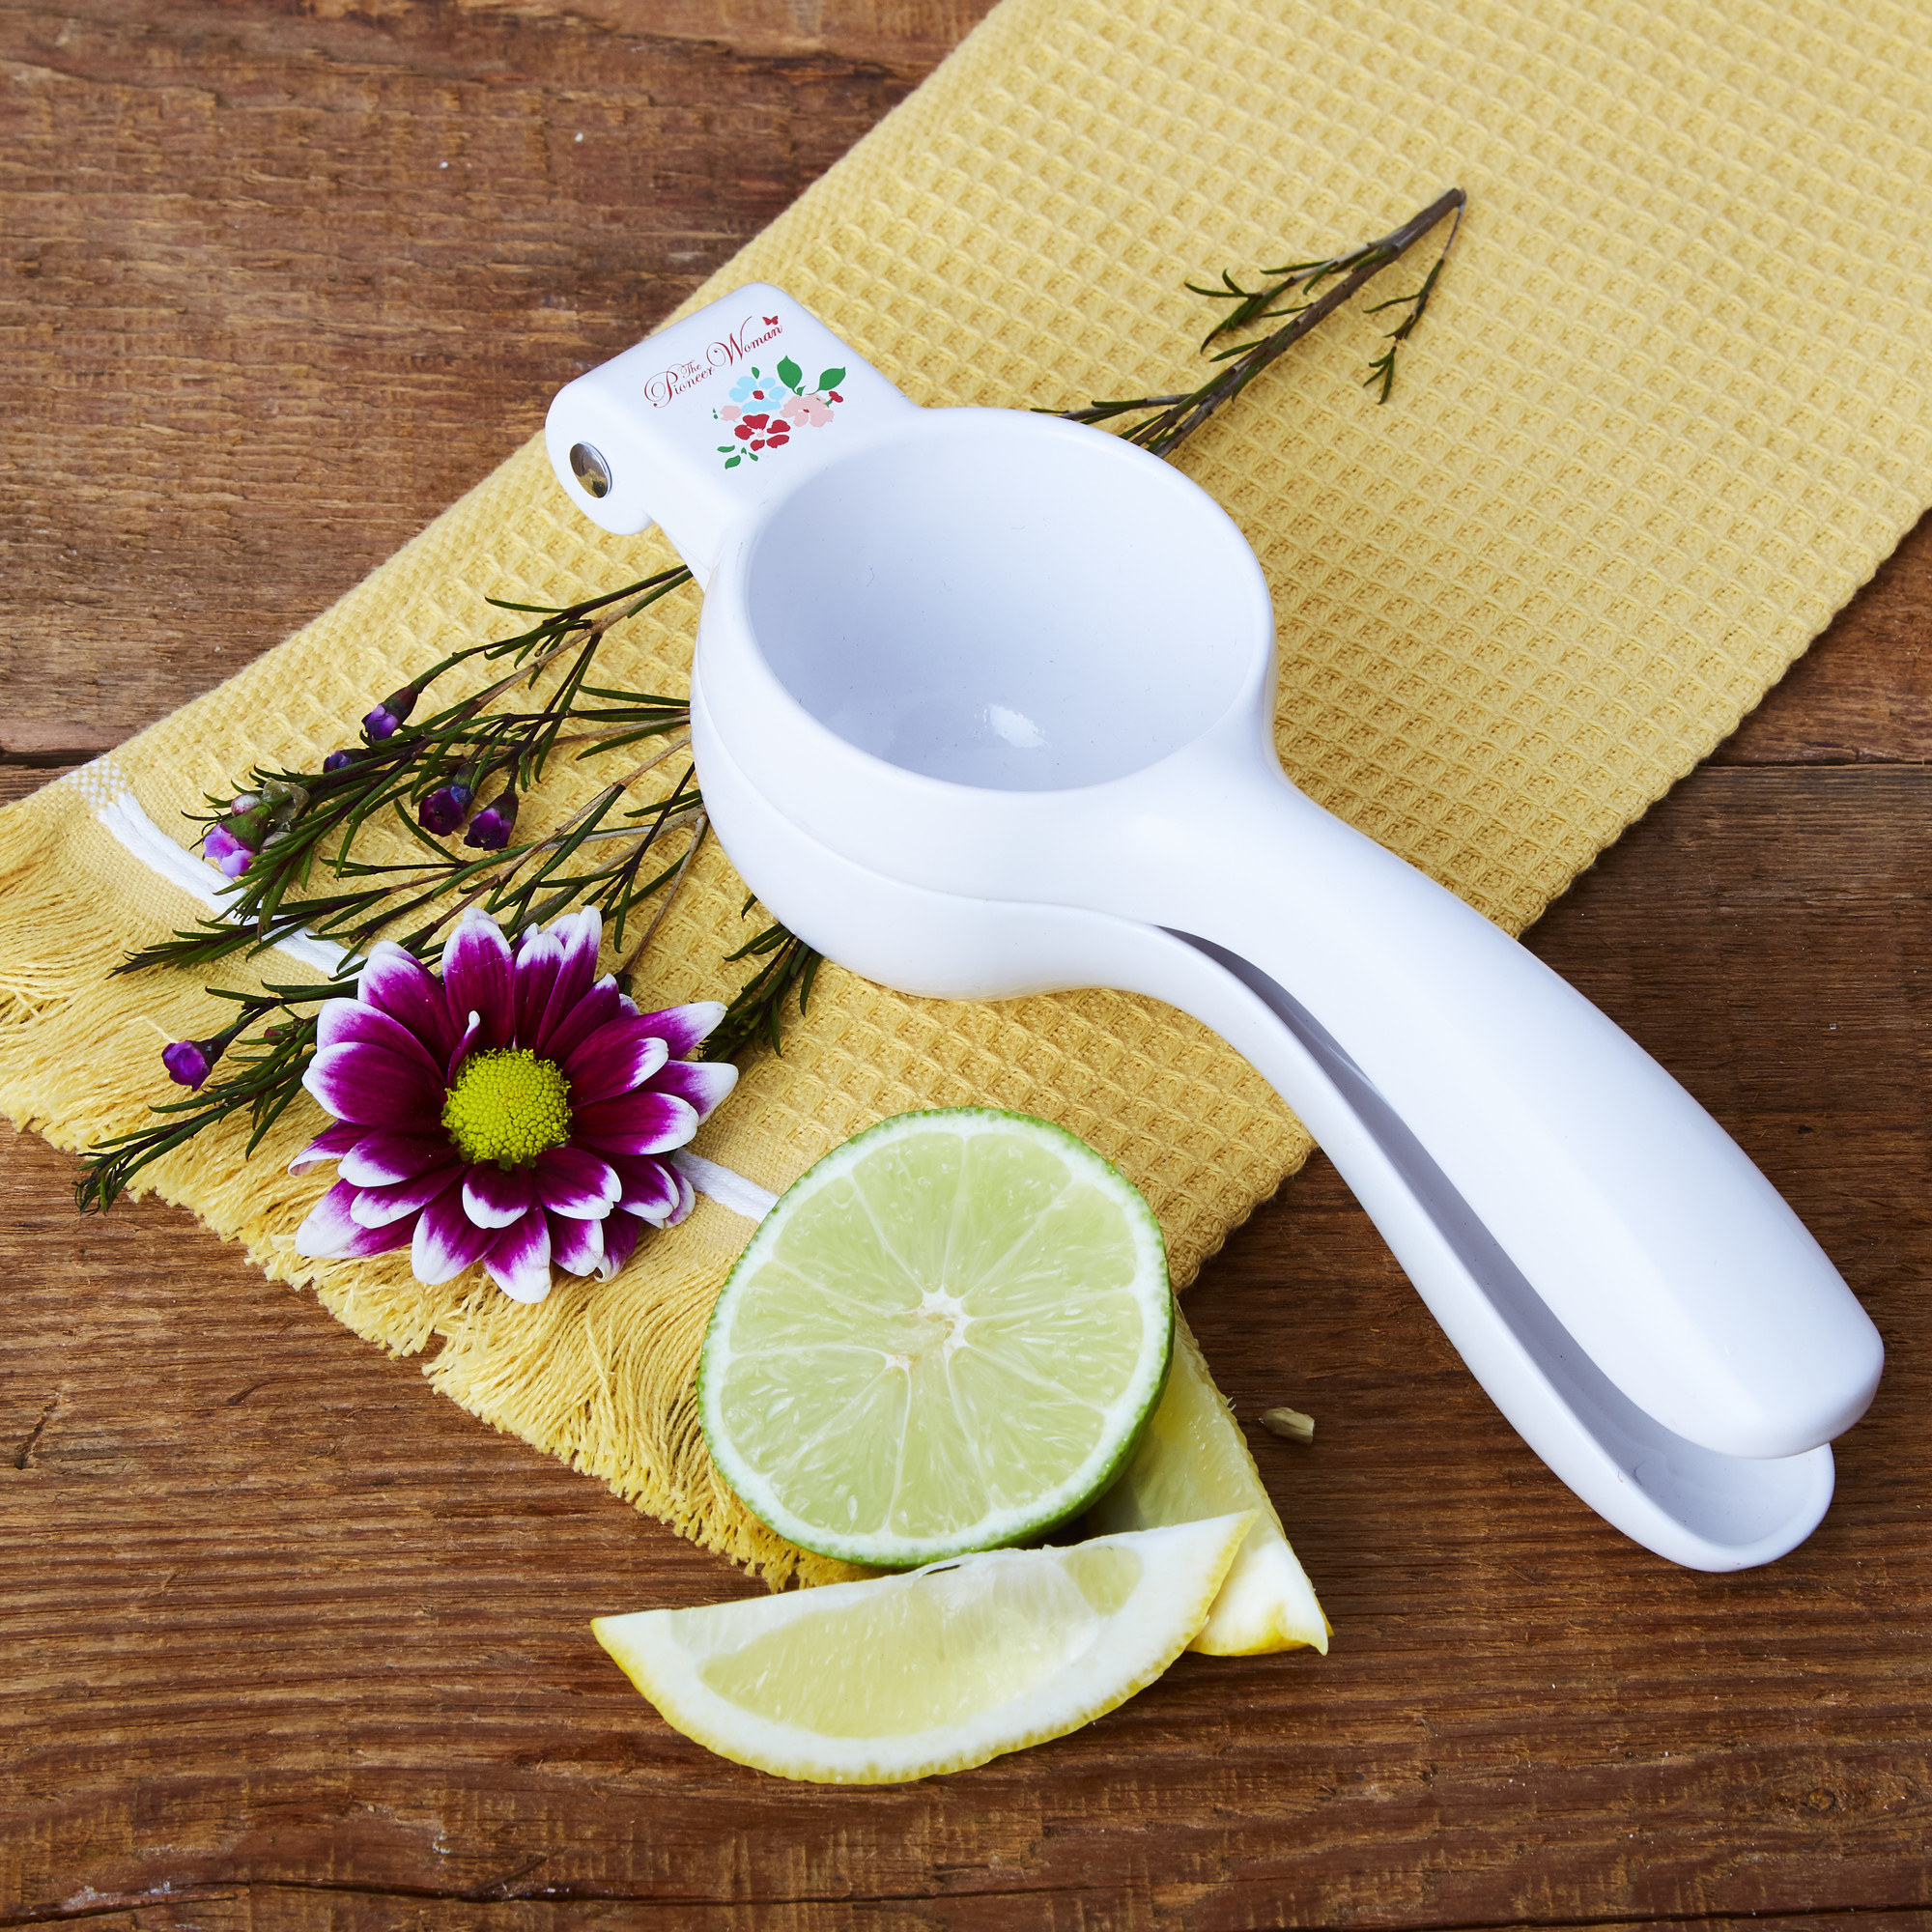 White citrus press on a yellow hand towel